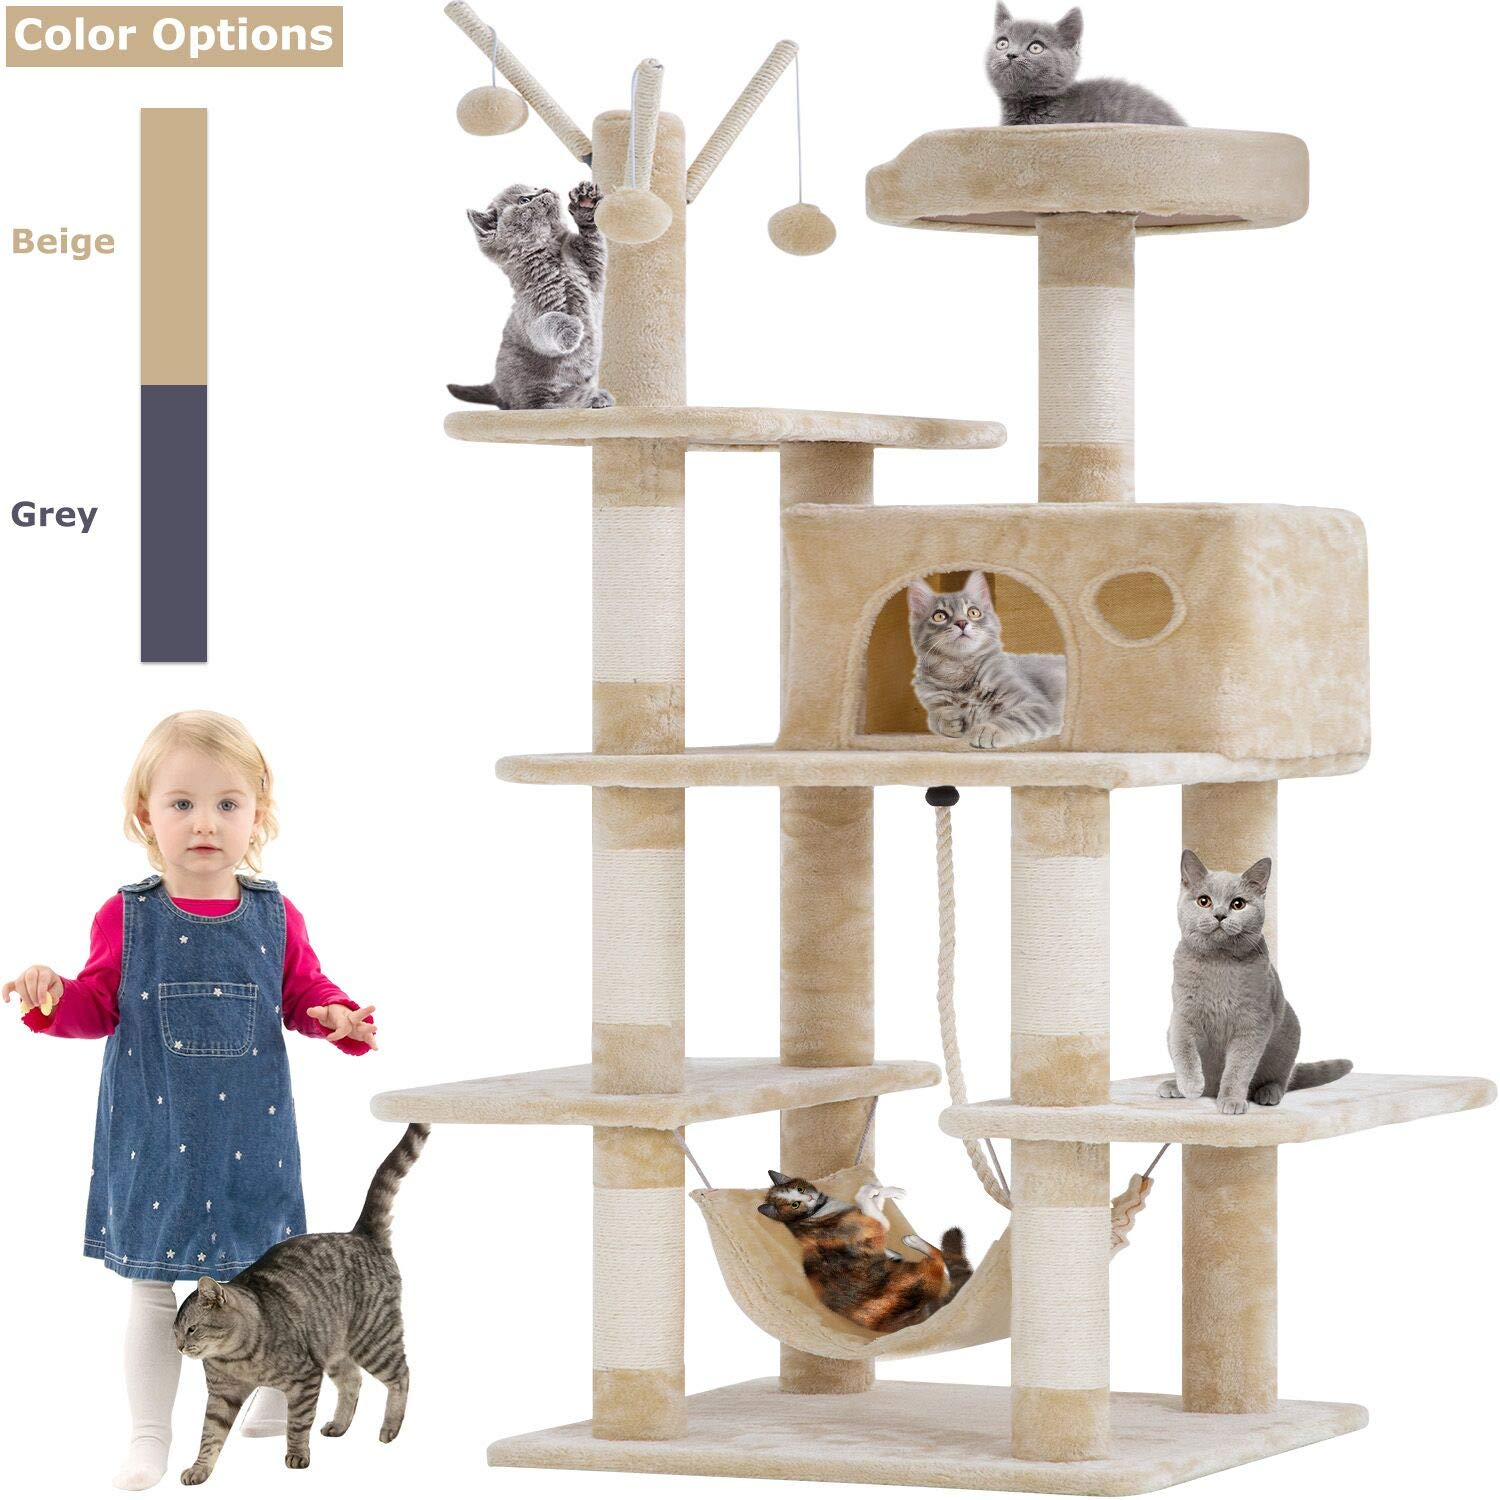 BestPet Cat Tree Tower Condo Playground Cage Kitten Multi-Level 56 inches Activity Center Play House Medium Scratching Post Furniture Plush Perches with Hammock,Beige by BestPet